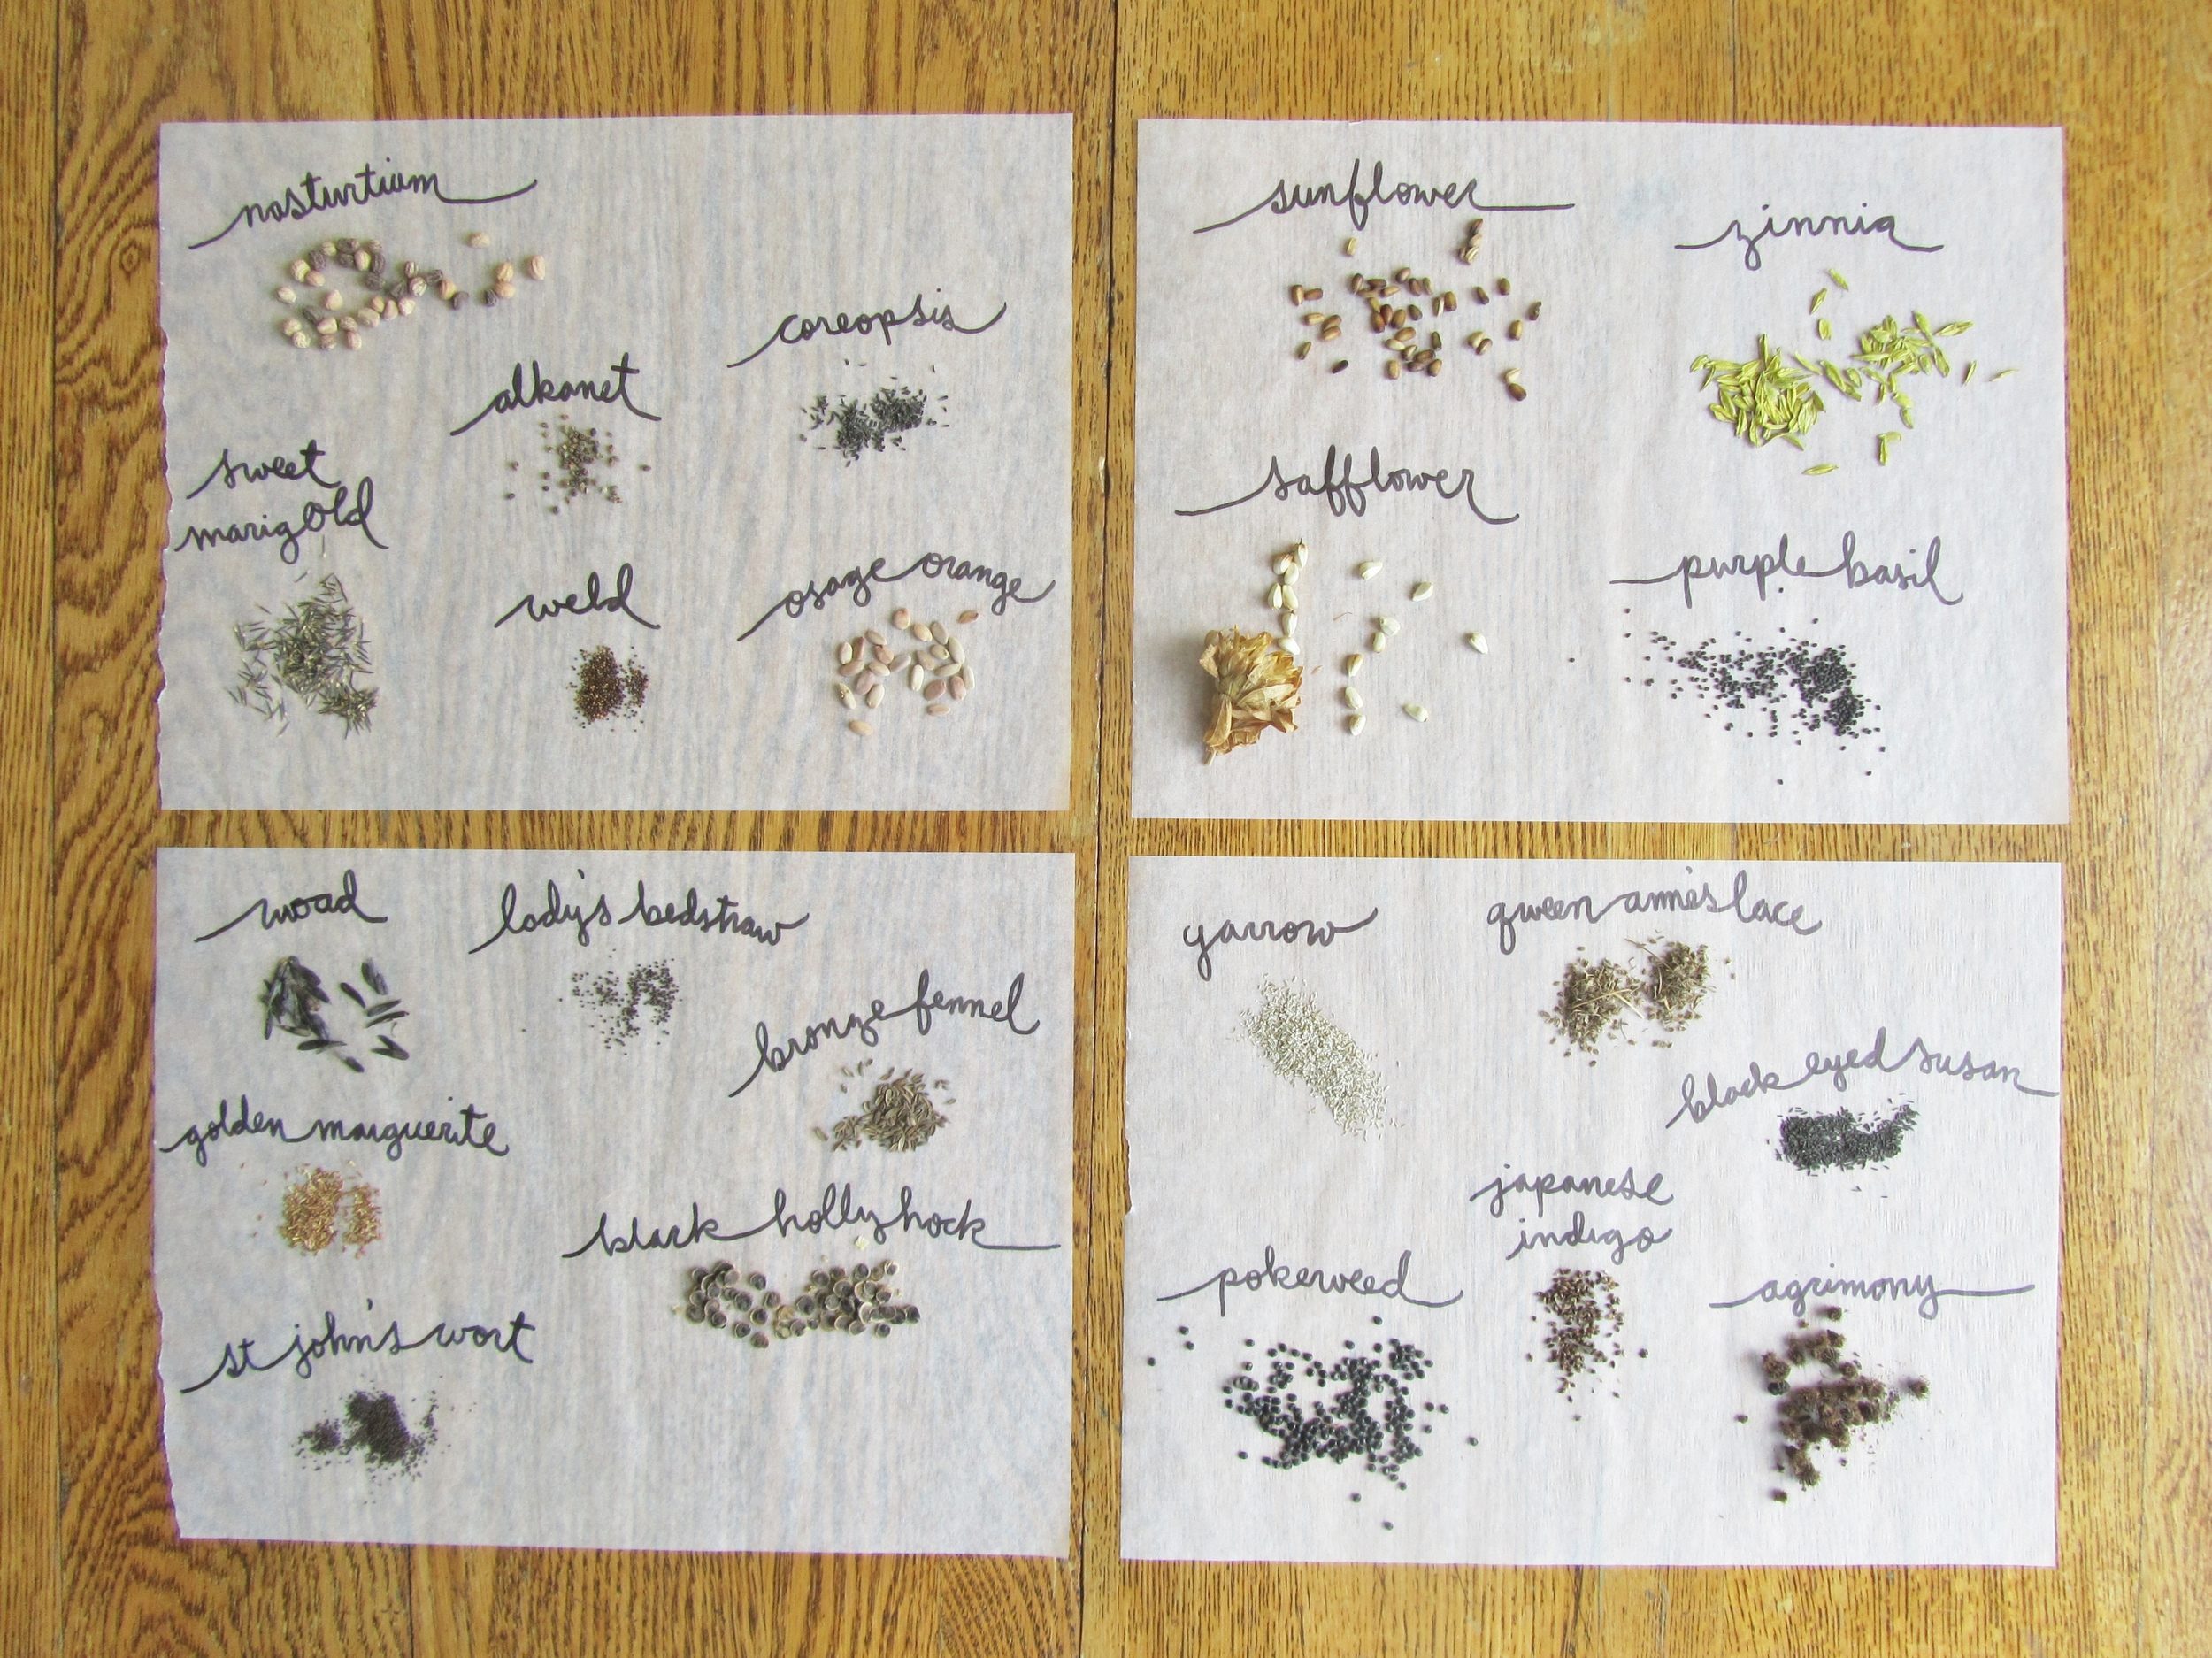 variety of dye plant seeds